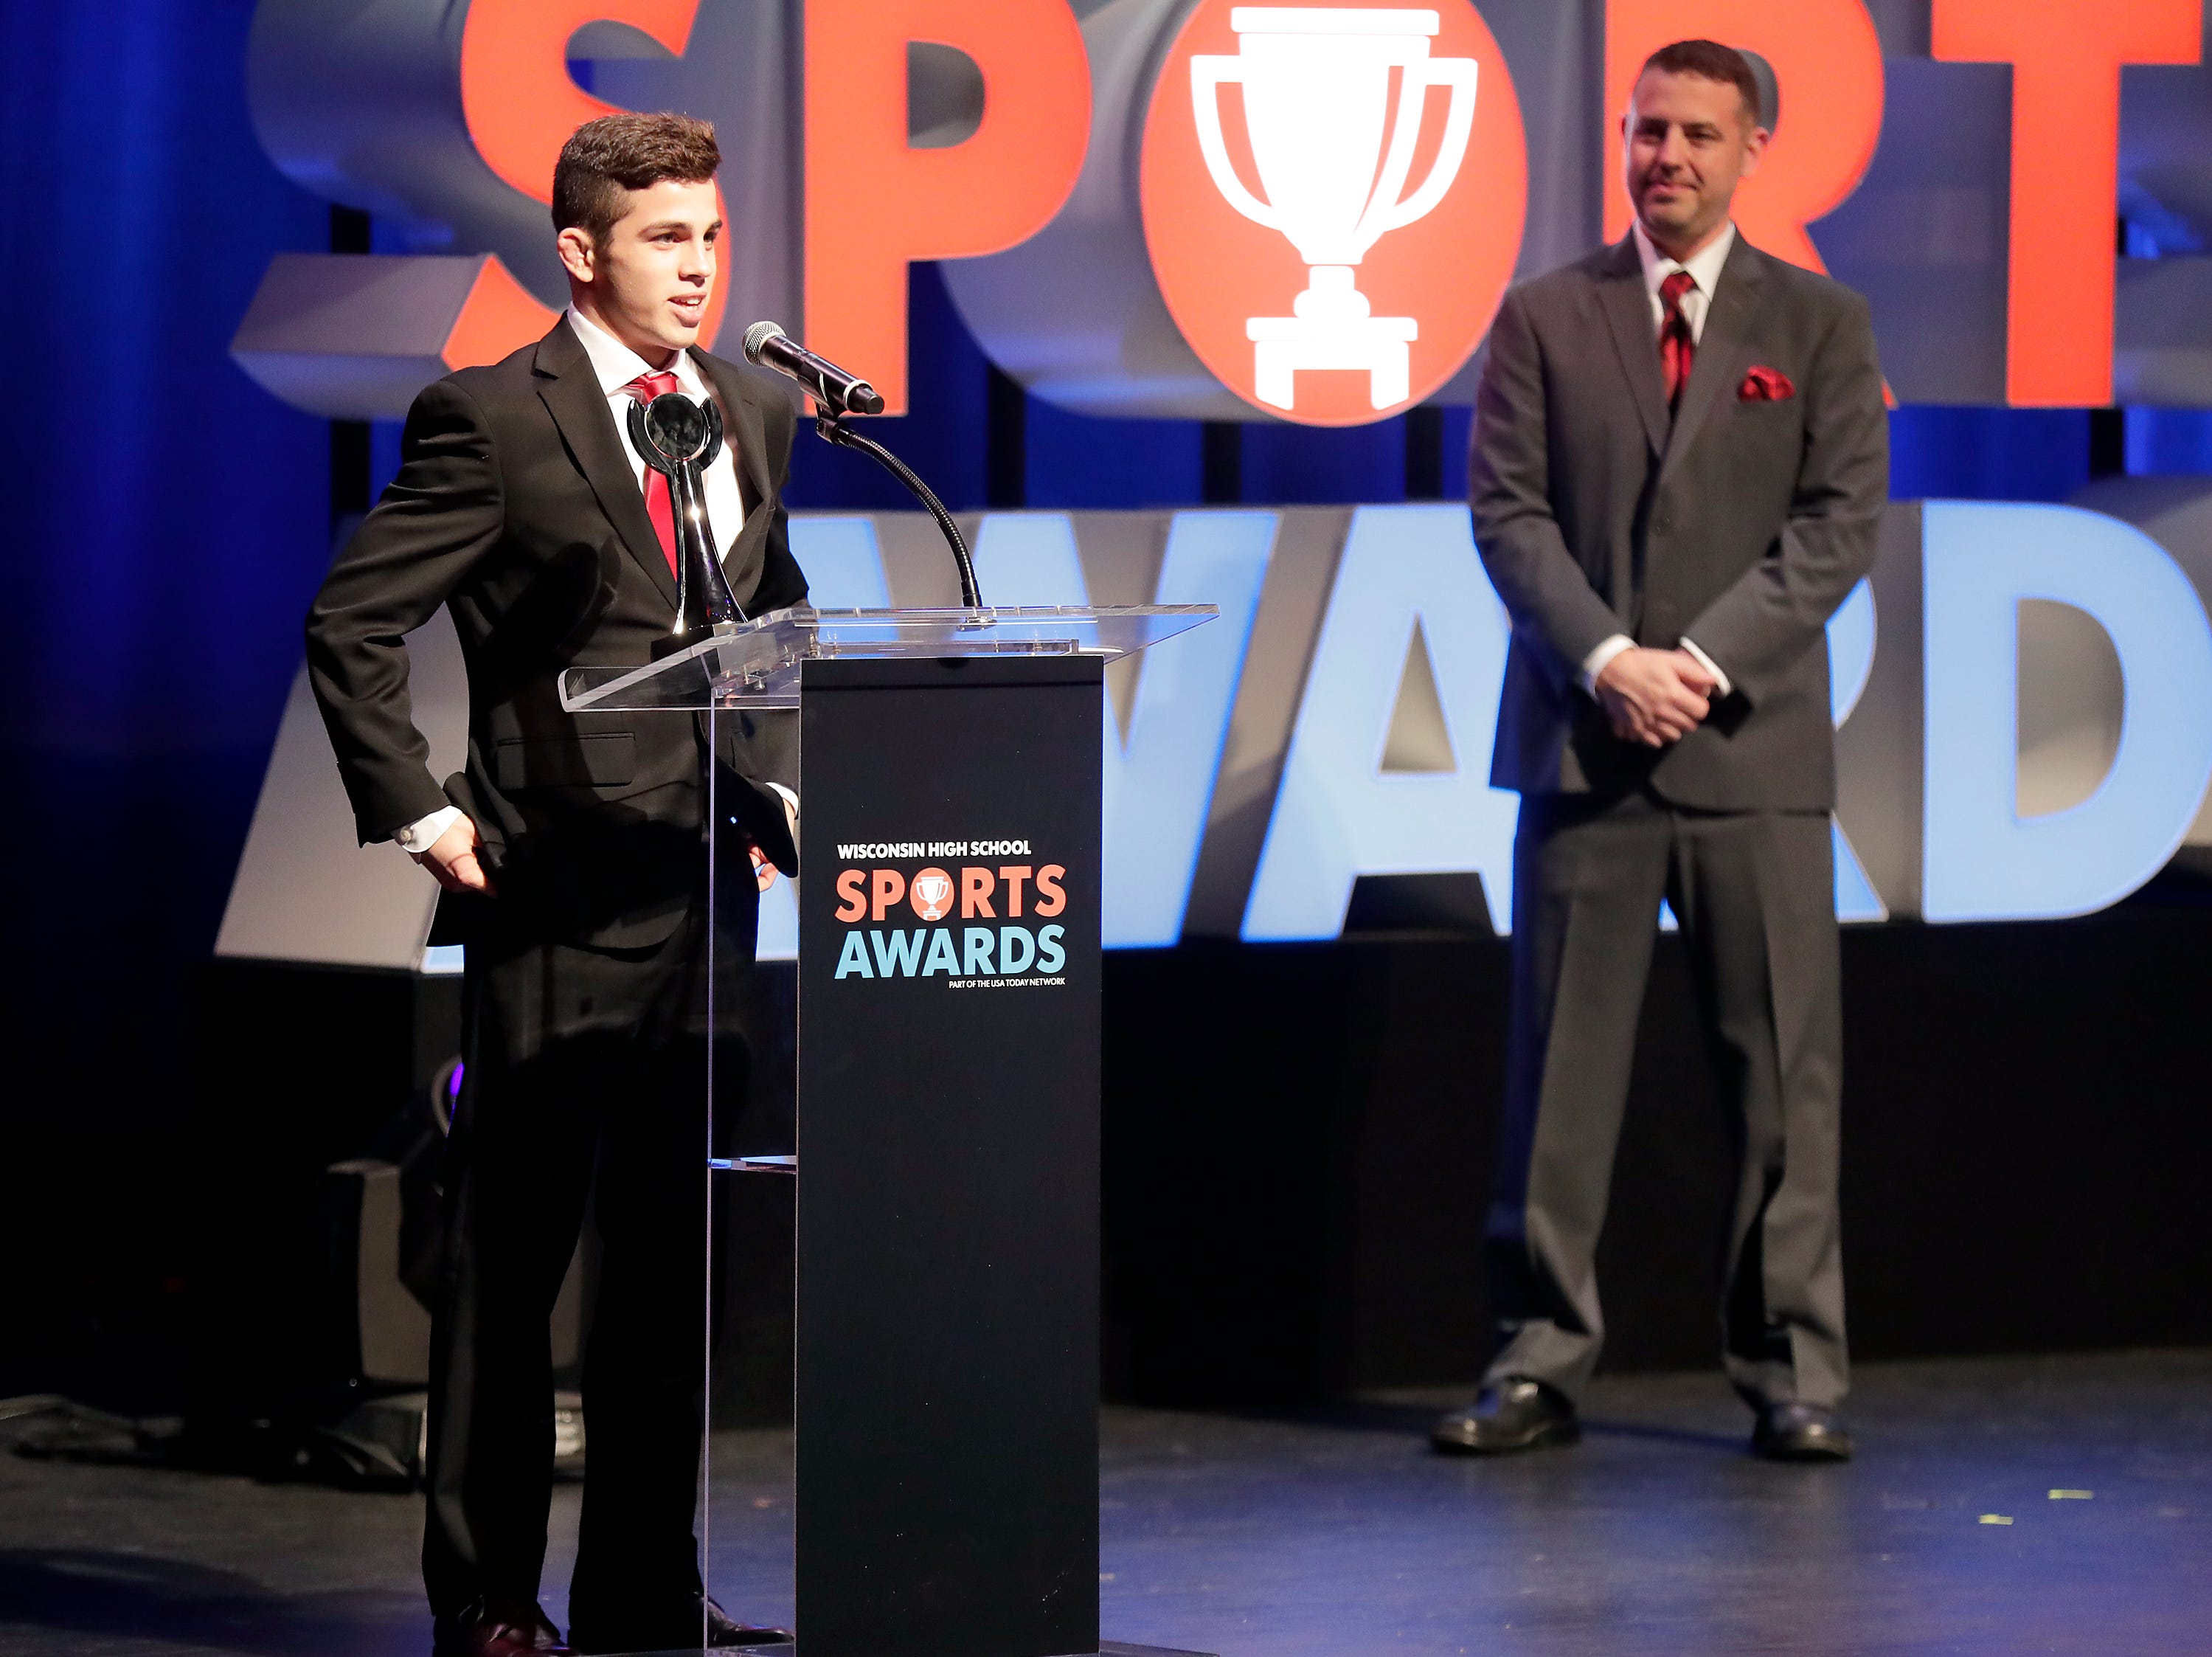 Wrestler of the year Eric Barnett of Hortonville during the Wisconsin High School Sports Awards show at the Fox Cities Performing Arts Center on Wednesday, May 8, 2019, in Appleton, Wis. Olympic champion Michael Phelps was the guest speaker. The annual event was presented by USA TODAY NETWORK-Wisconsin.  Wm. Glasheen/USA TODAY NETWORK-Wisconsin.